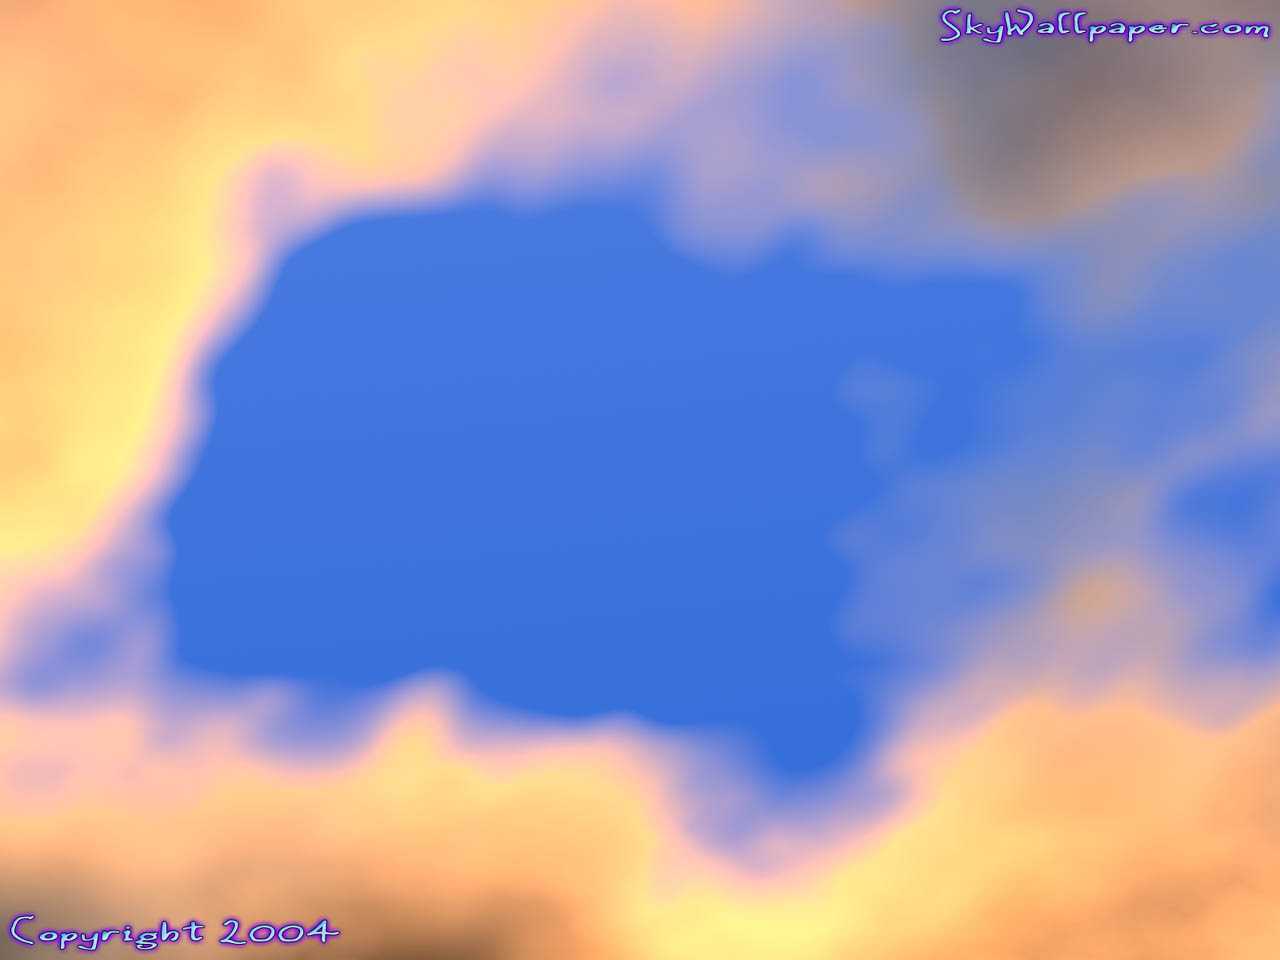 """Digital Sky Wallpaper Image"" - Wallpaper No. 87 of 109. Right click for saving options."